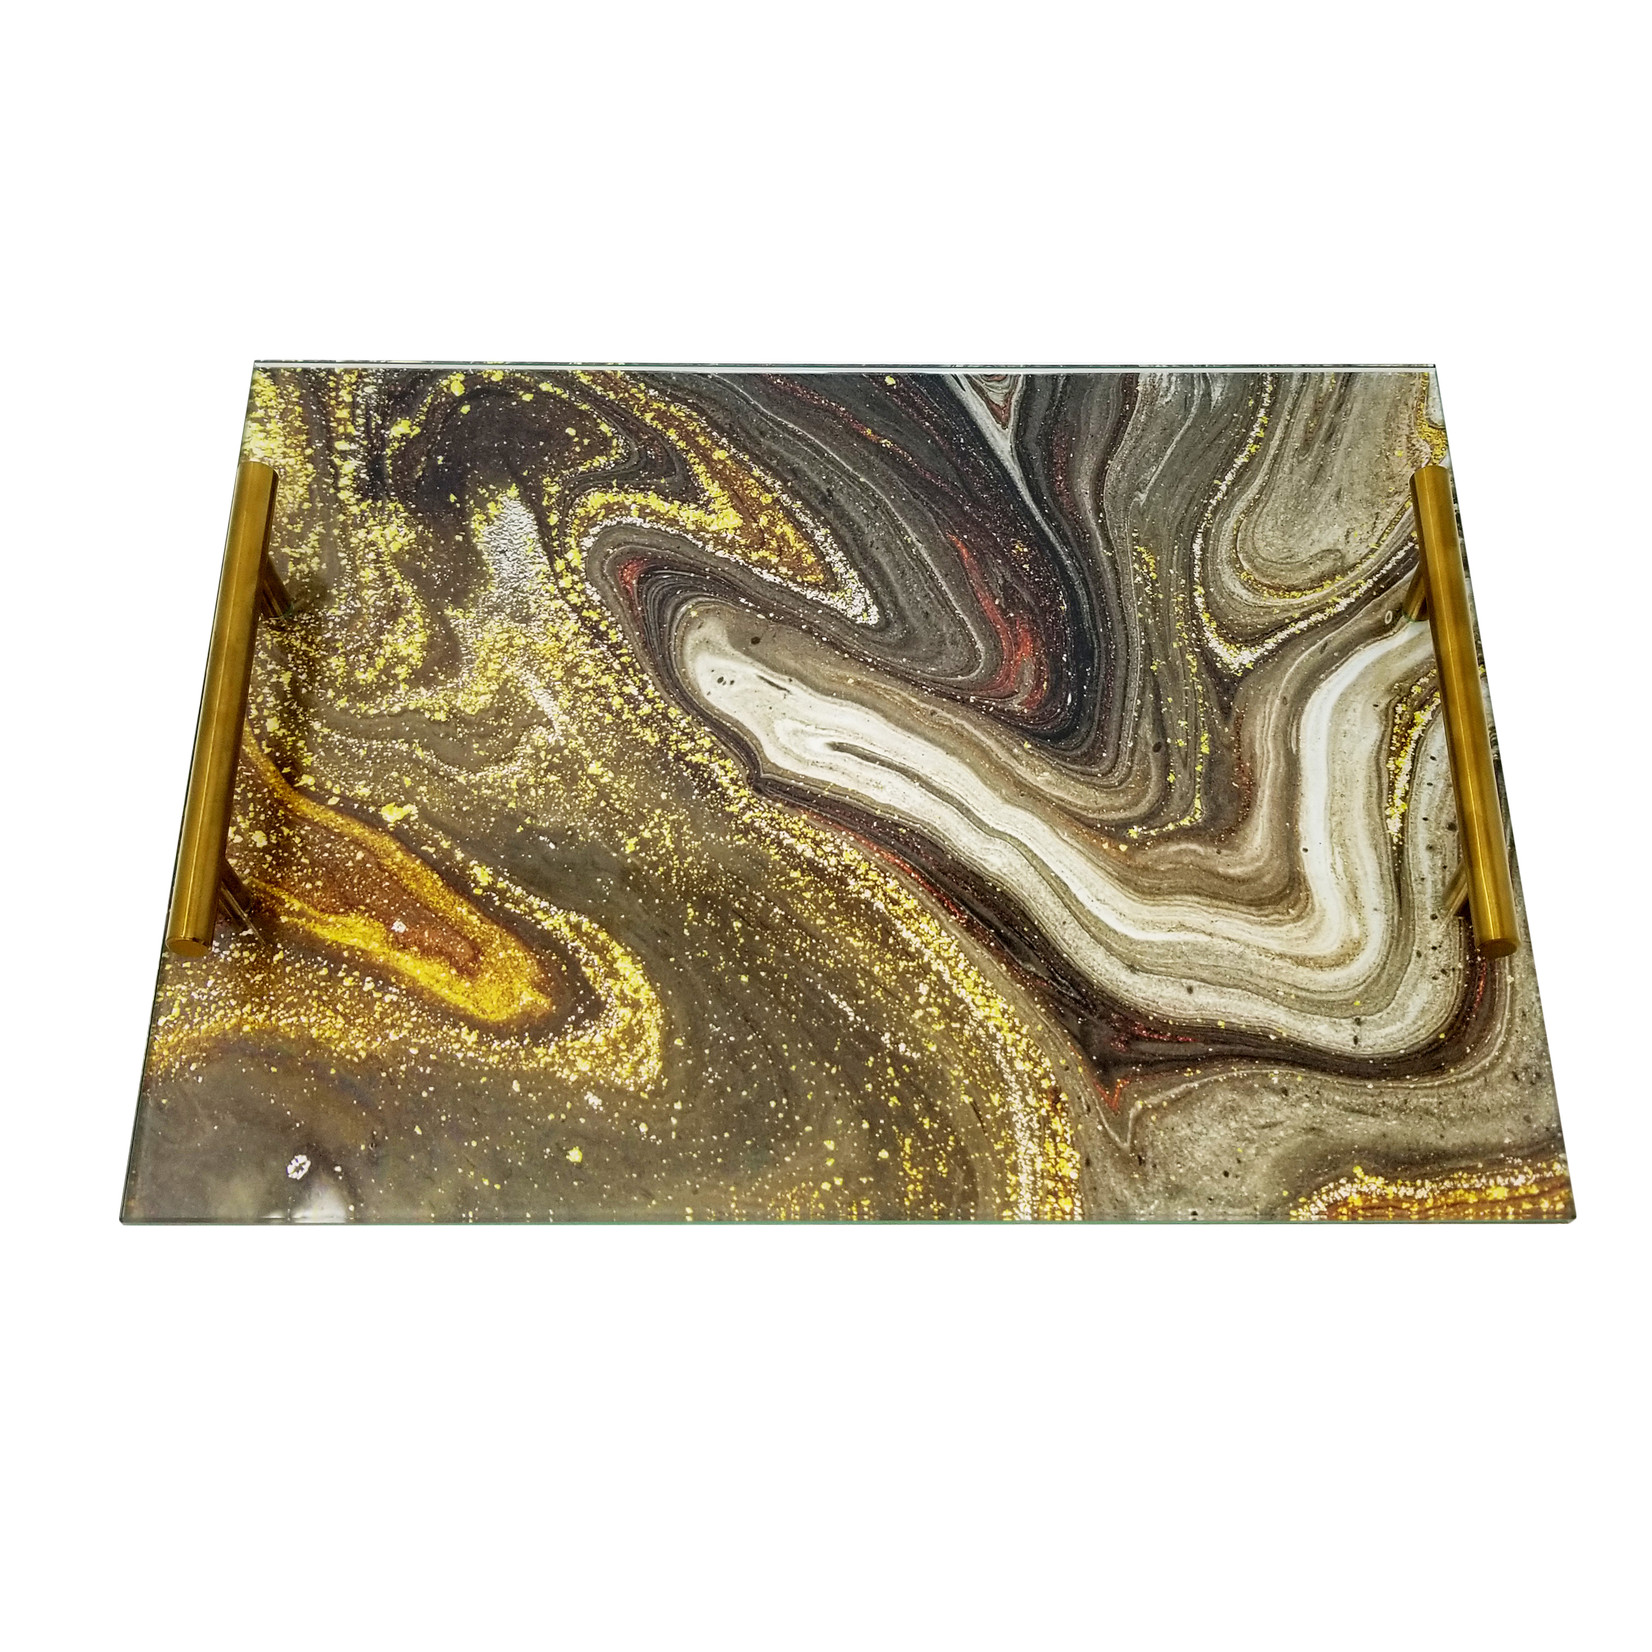 Presented Touch Acrylic Challah Board Black Marble